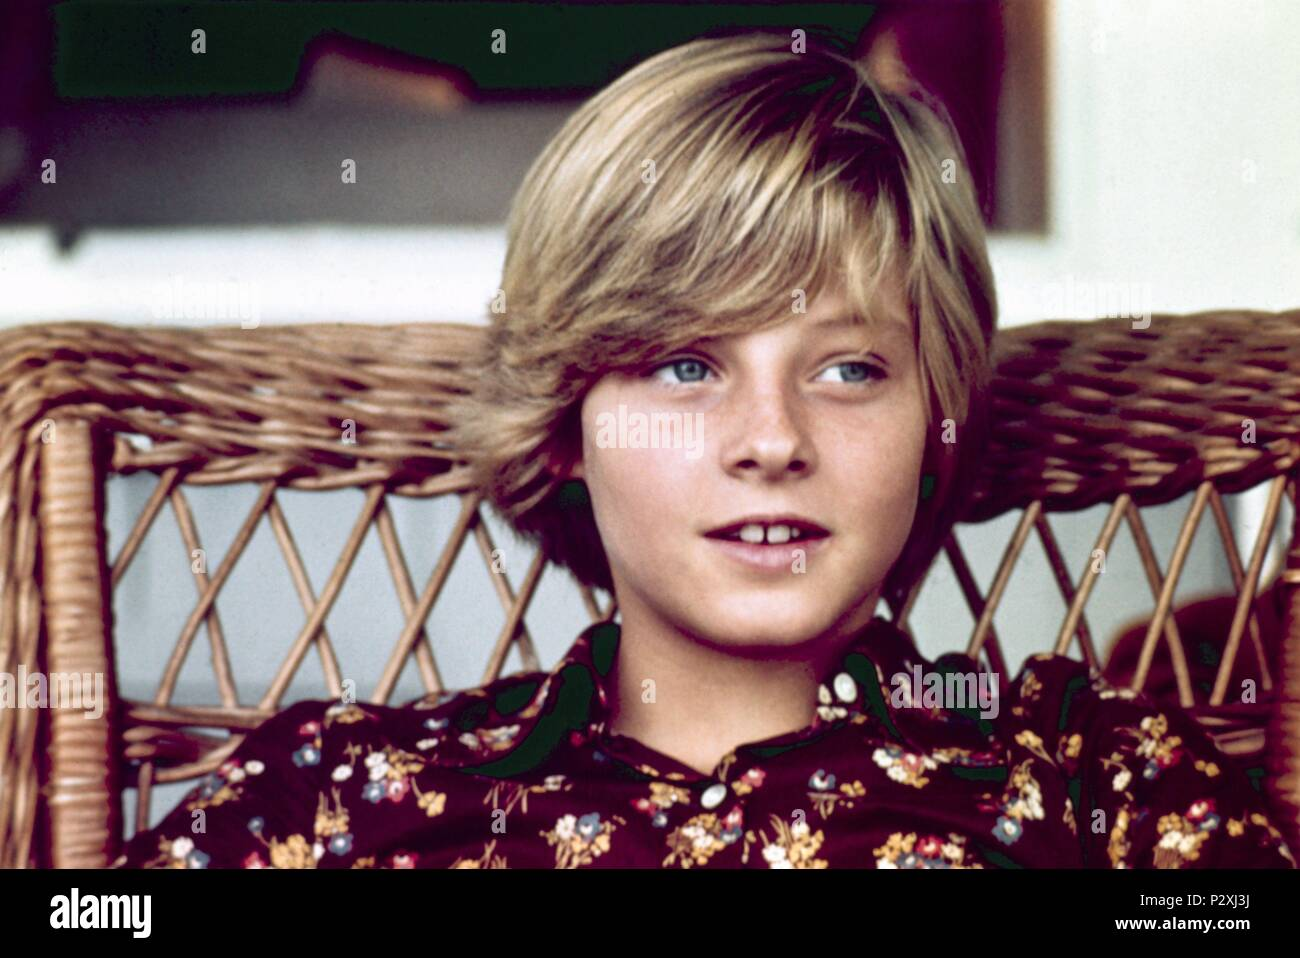 jodie foster 1976 stock photos jodie foster 1976 stock images alamy. Black Bedroom Furniture Sets. Home Design Ideas